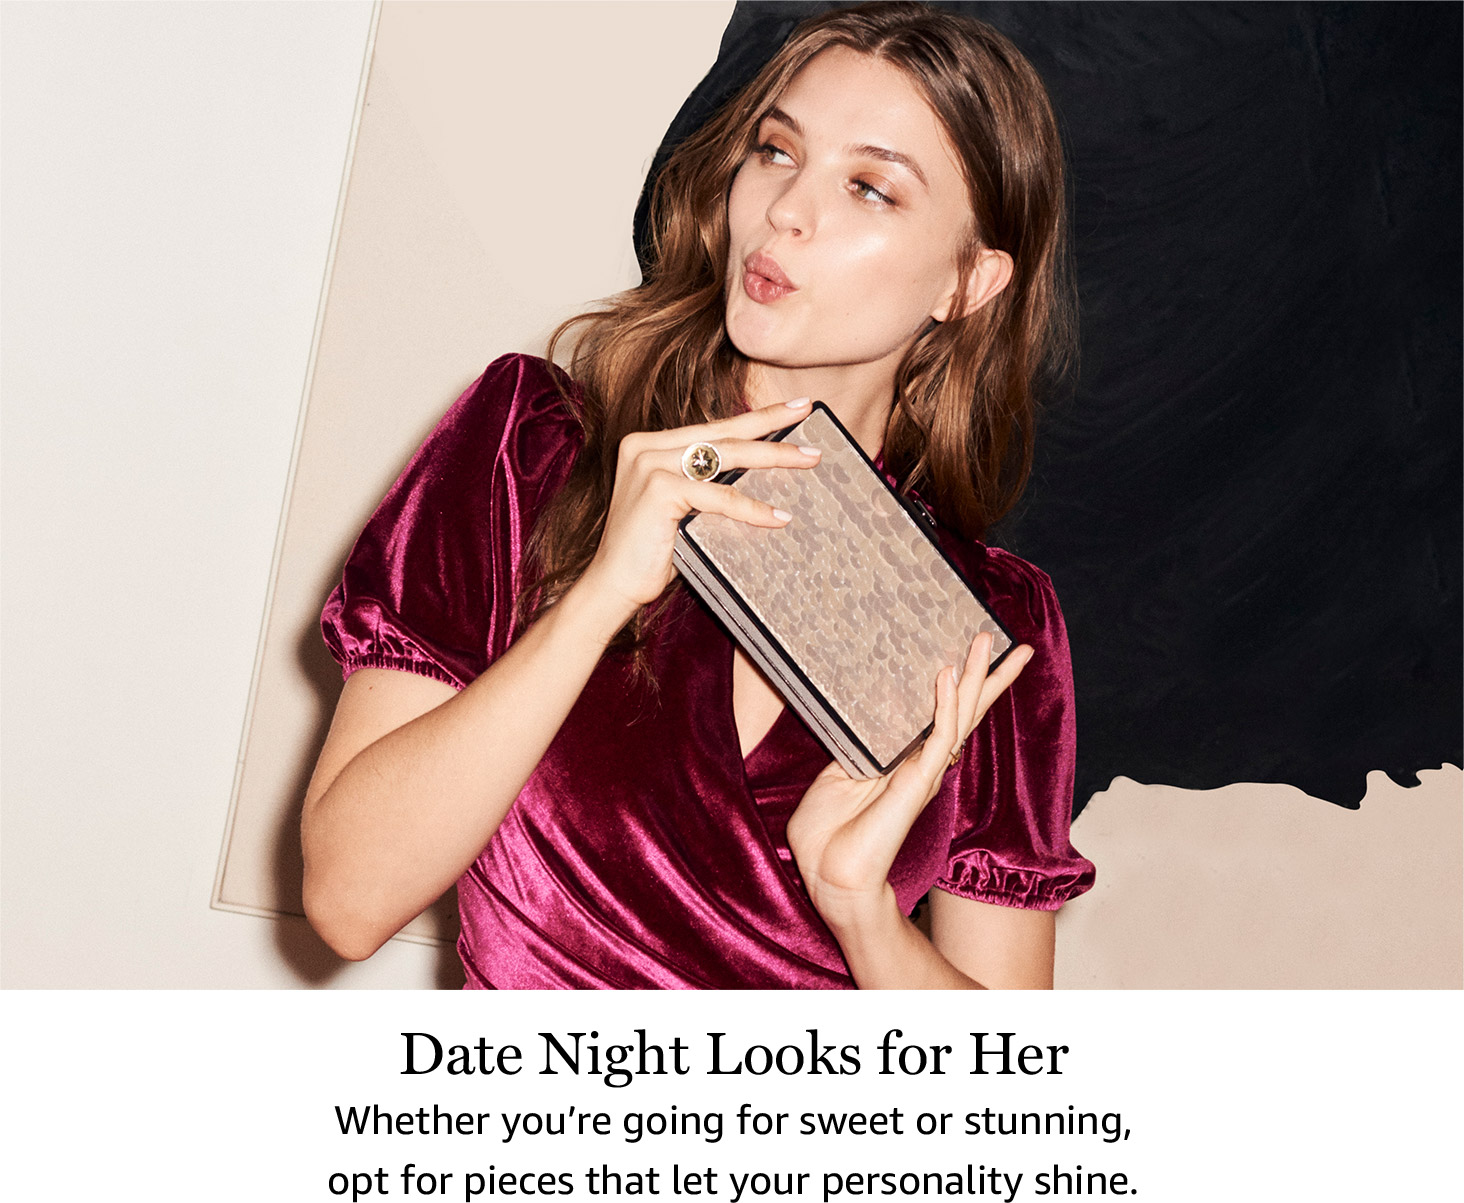 Date Night Looks for Her